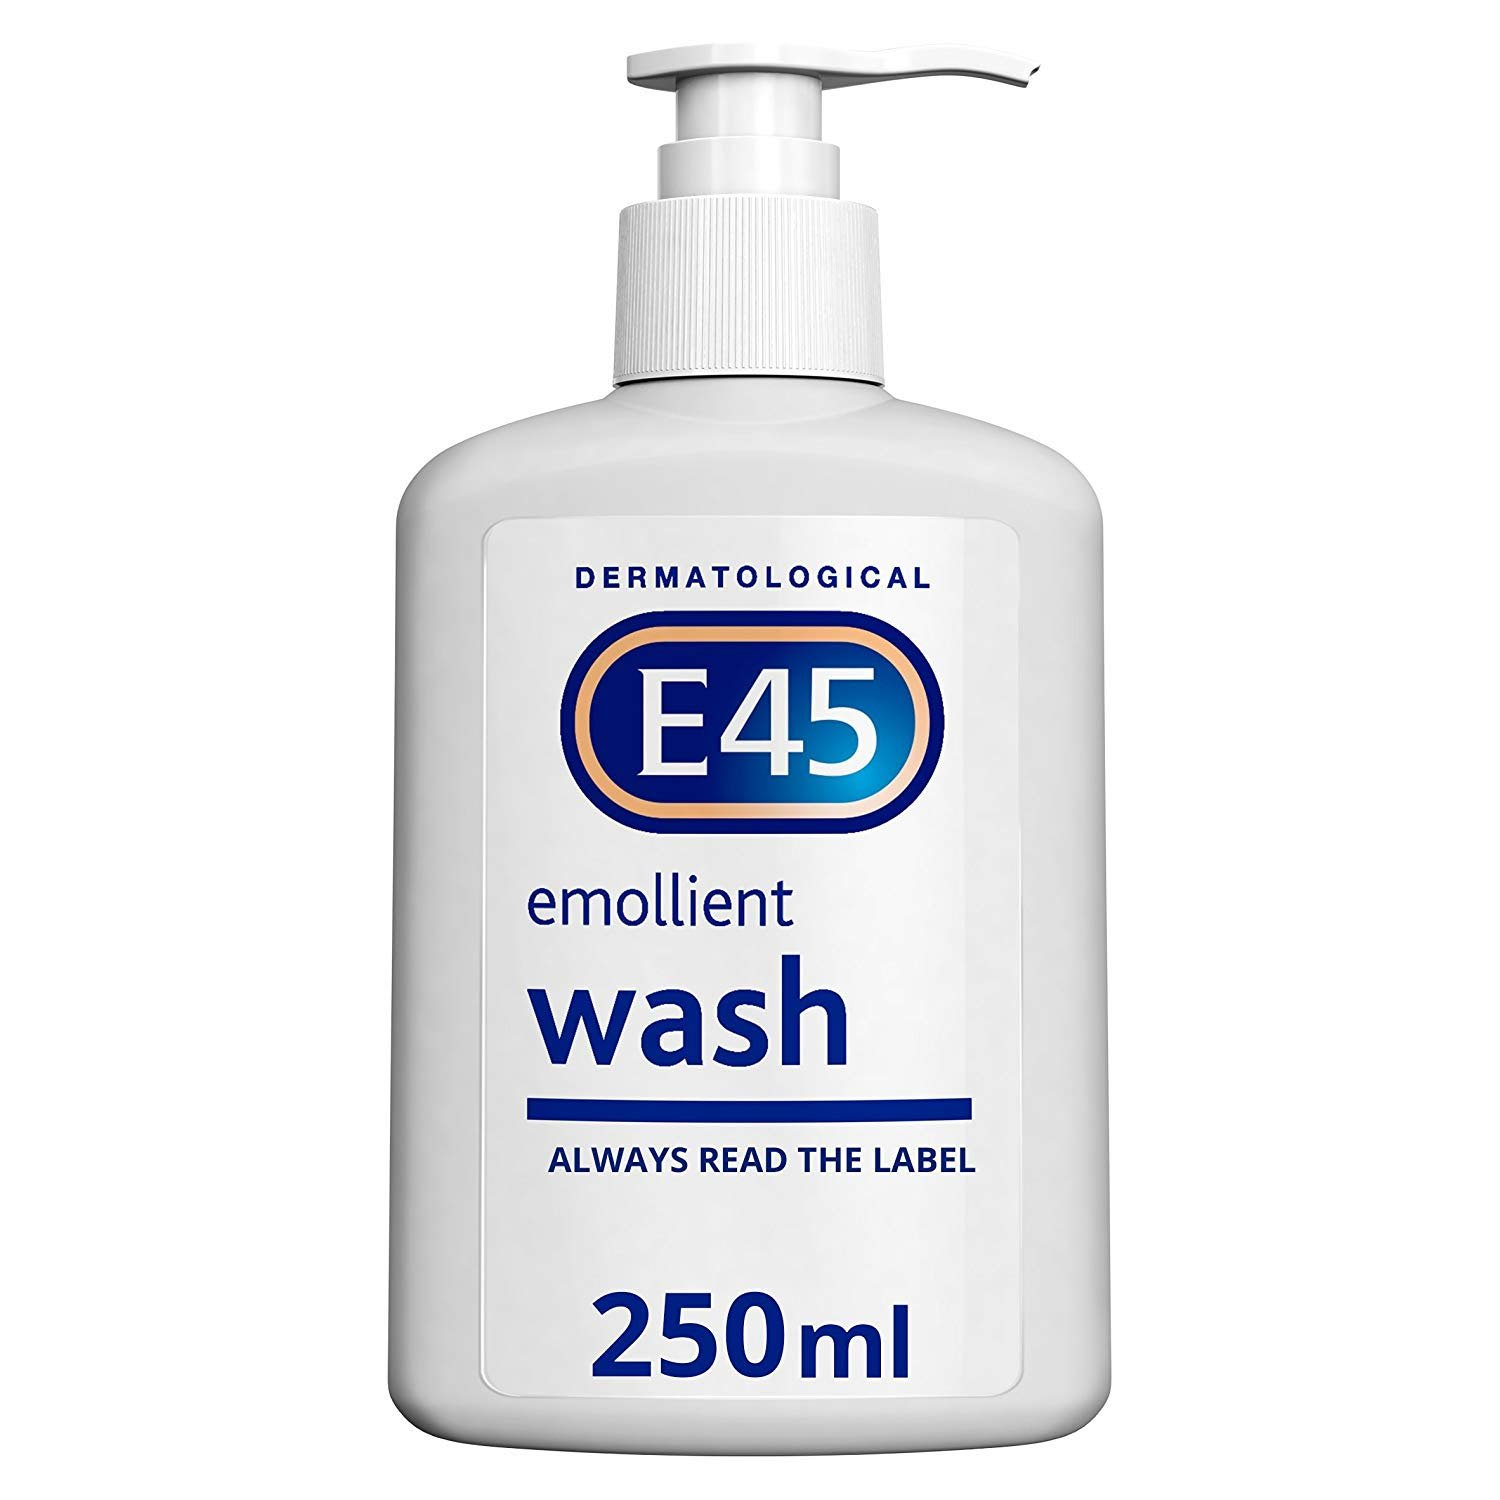 E45 Dermatological Emollient Wash Cream, 250 ml Reckitt Benckiser 217240